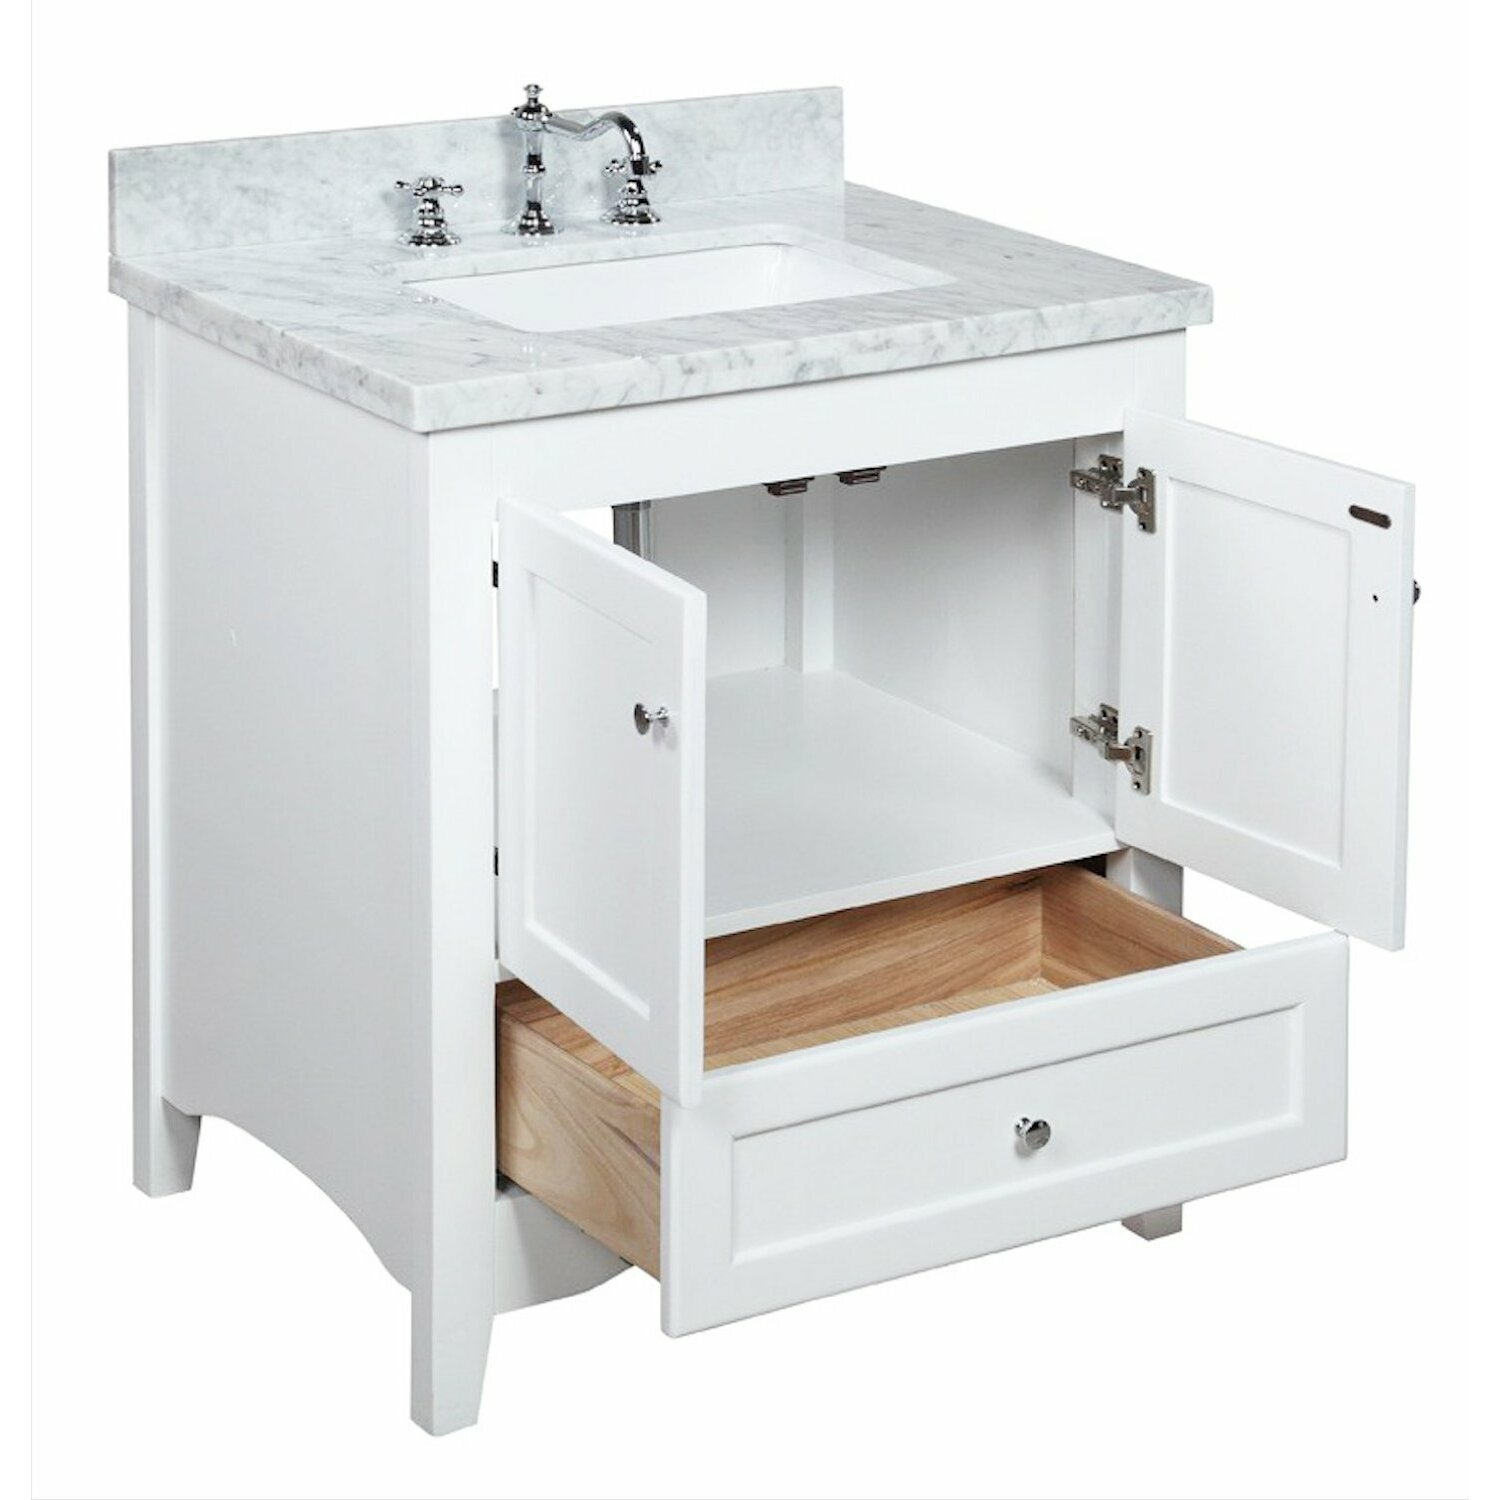 Kbc abbey 30 single bathroom vanity set reviews wayfair for Bathroom cabinets 30 inch